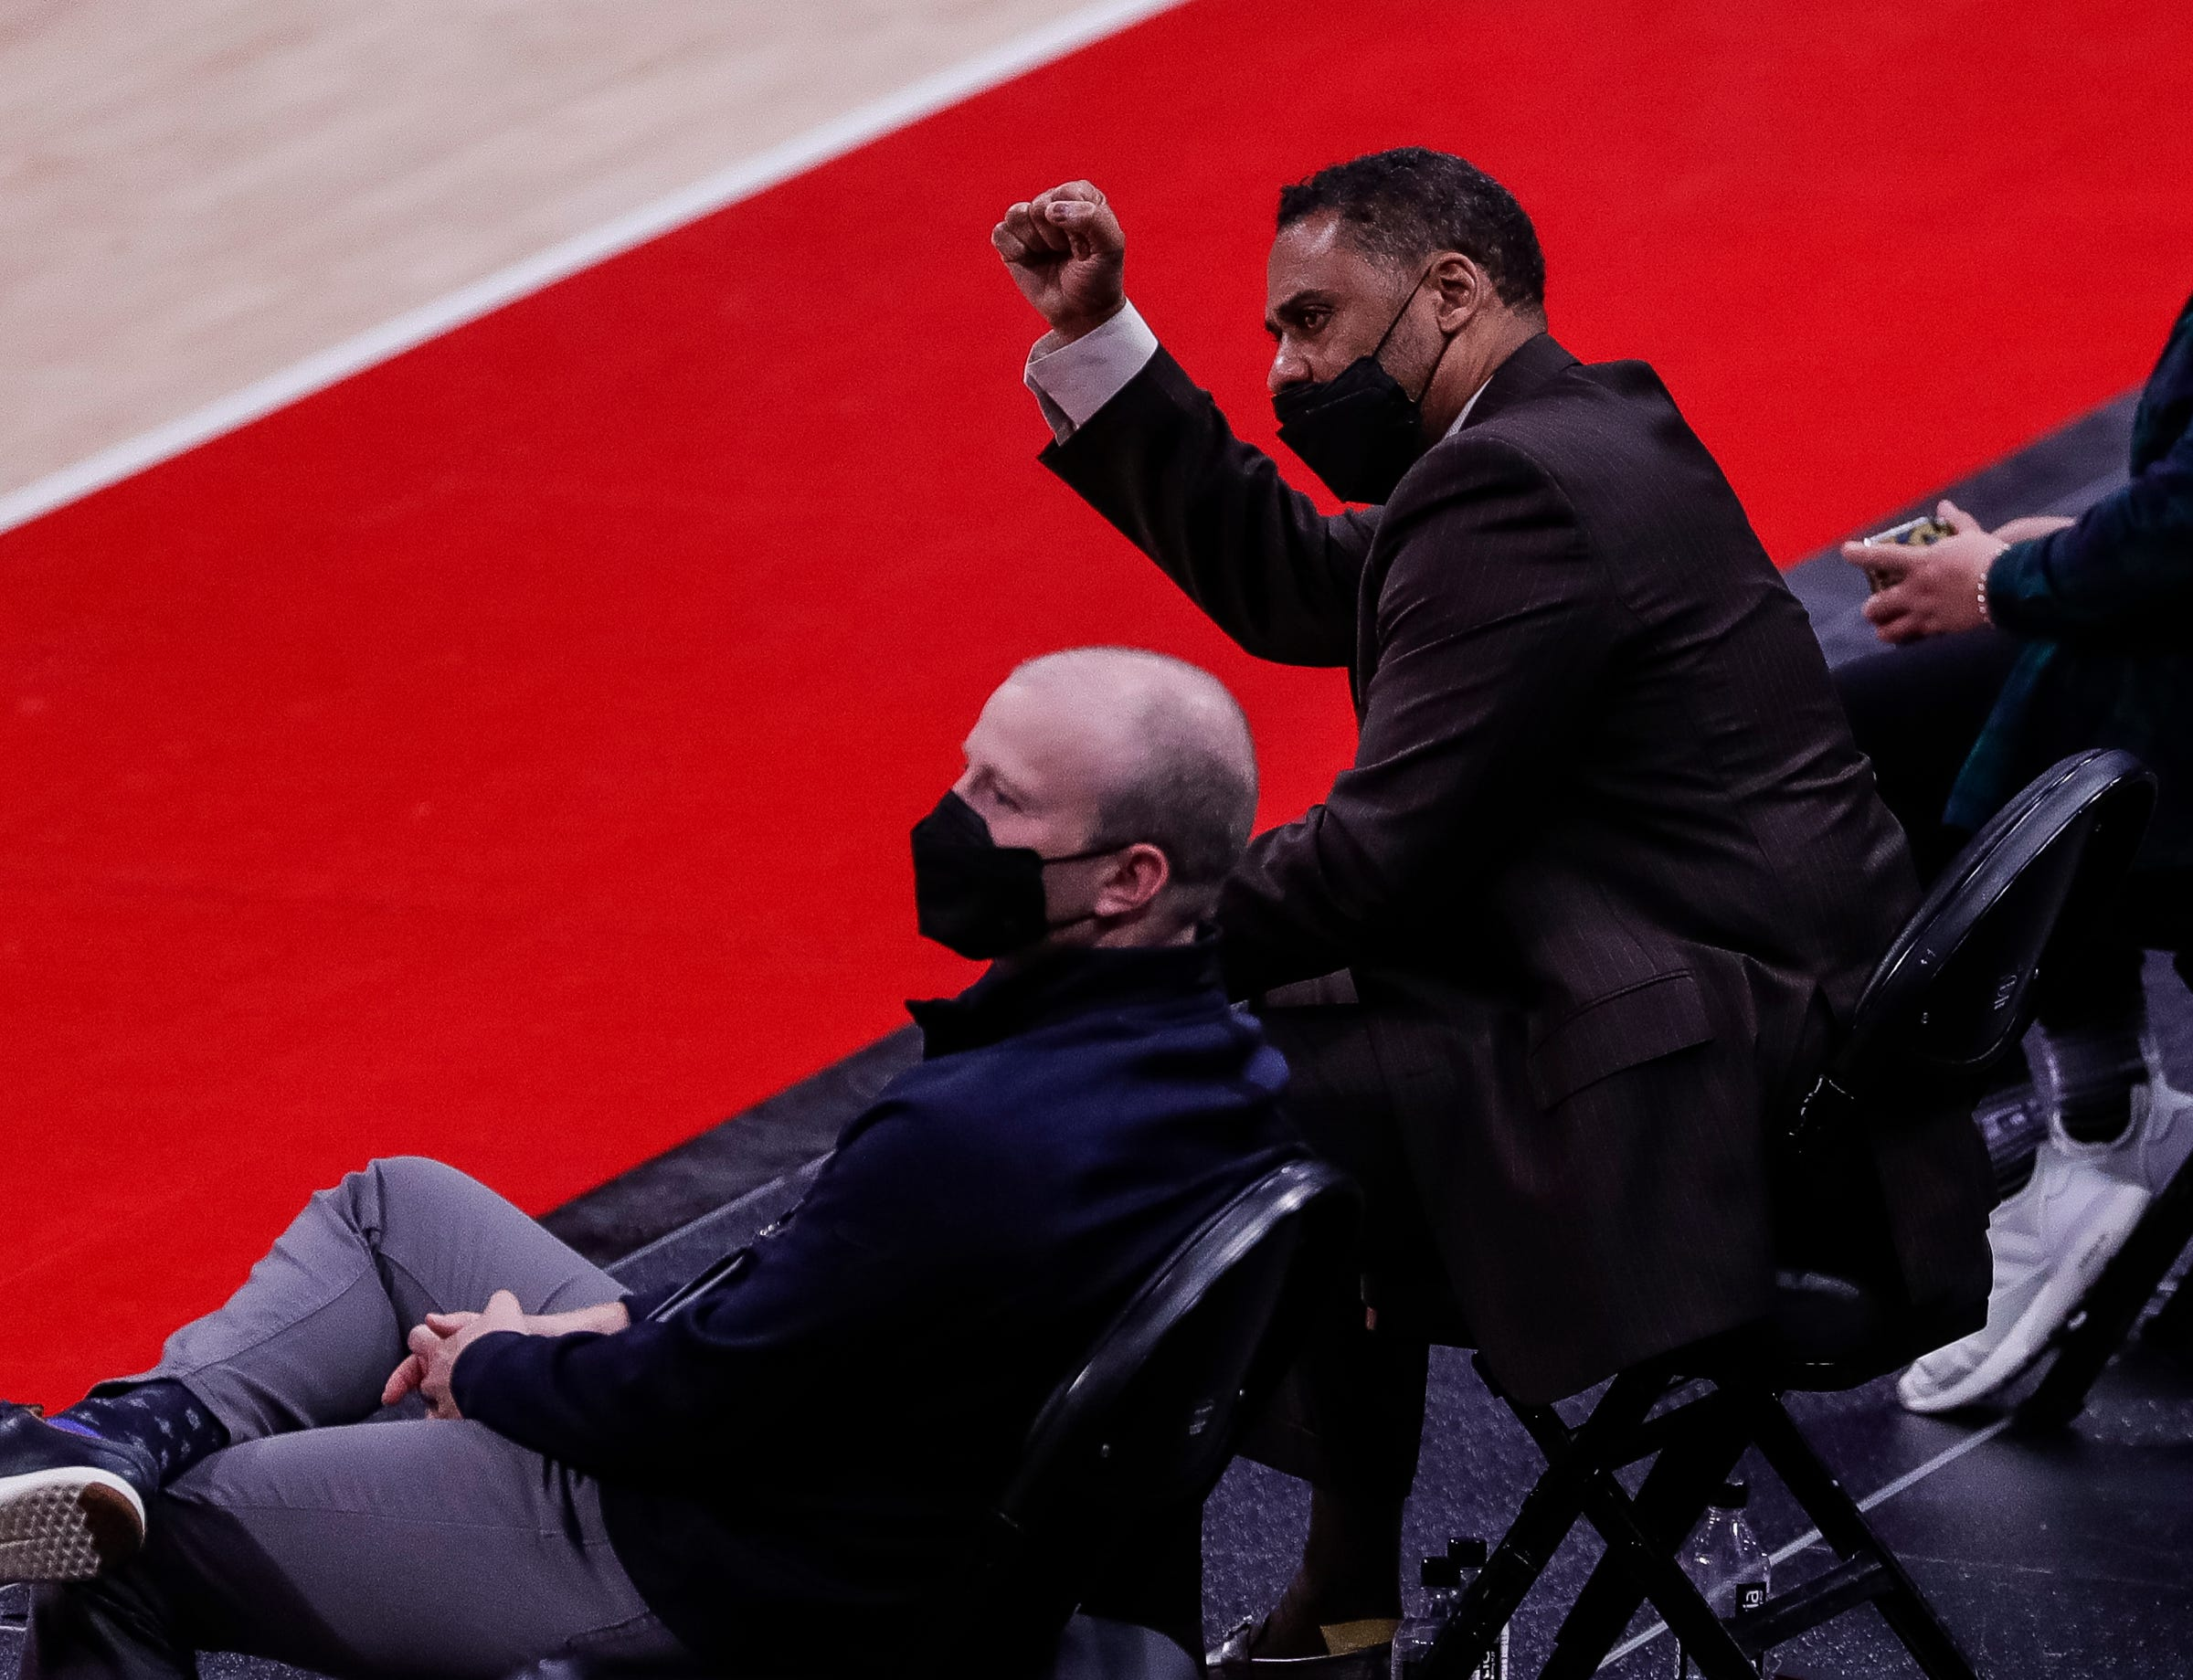 Detroit Pistons GM Troy Weaver on No. 1 pick: 'Such a talented group of players to choose from'